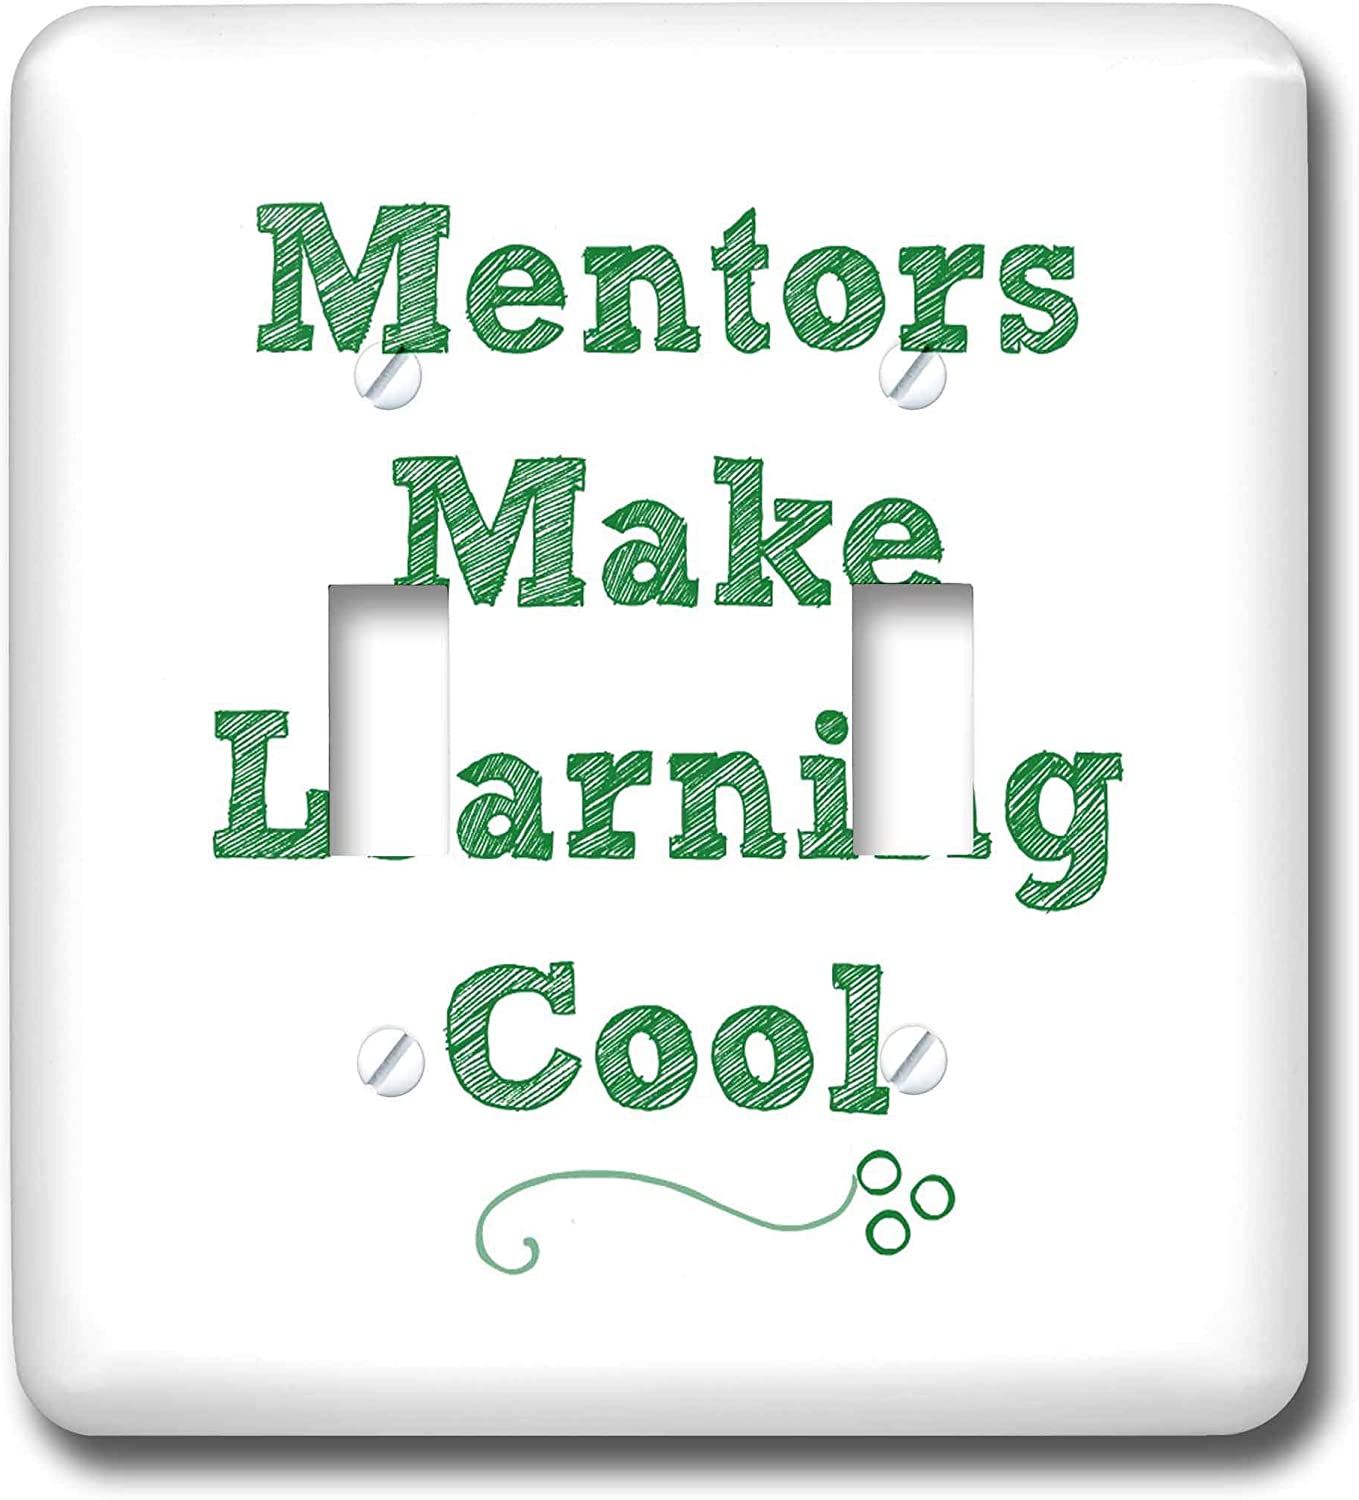 3dRose Carrie Merchant 3dRose Quote - Image of Mentors Make Learning Cool - double toggle switch (lsp_311857_2)